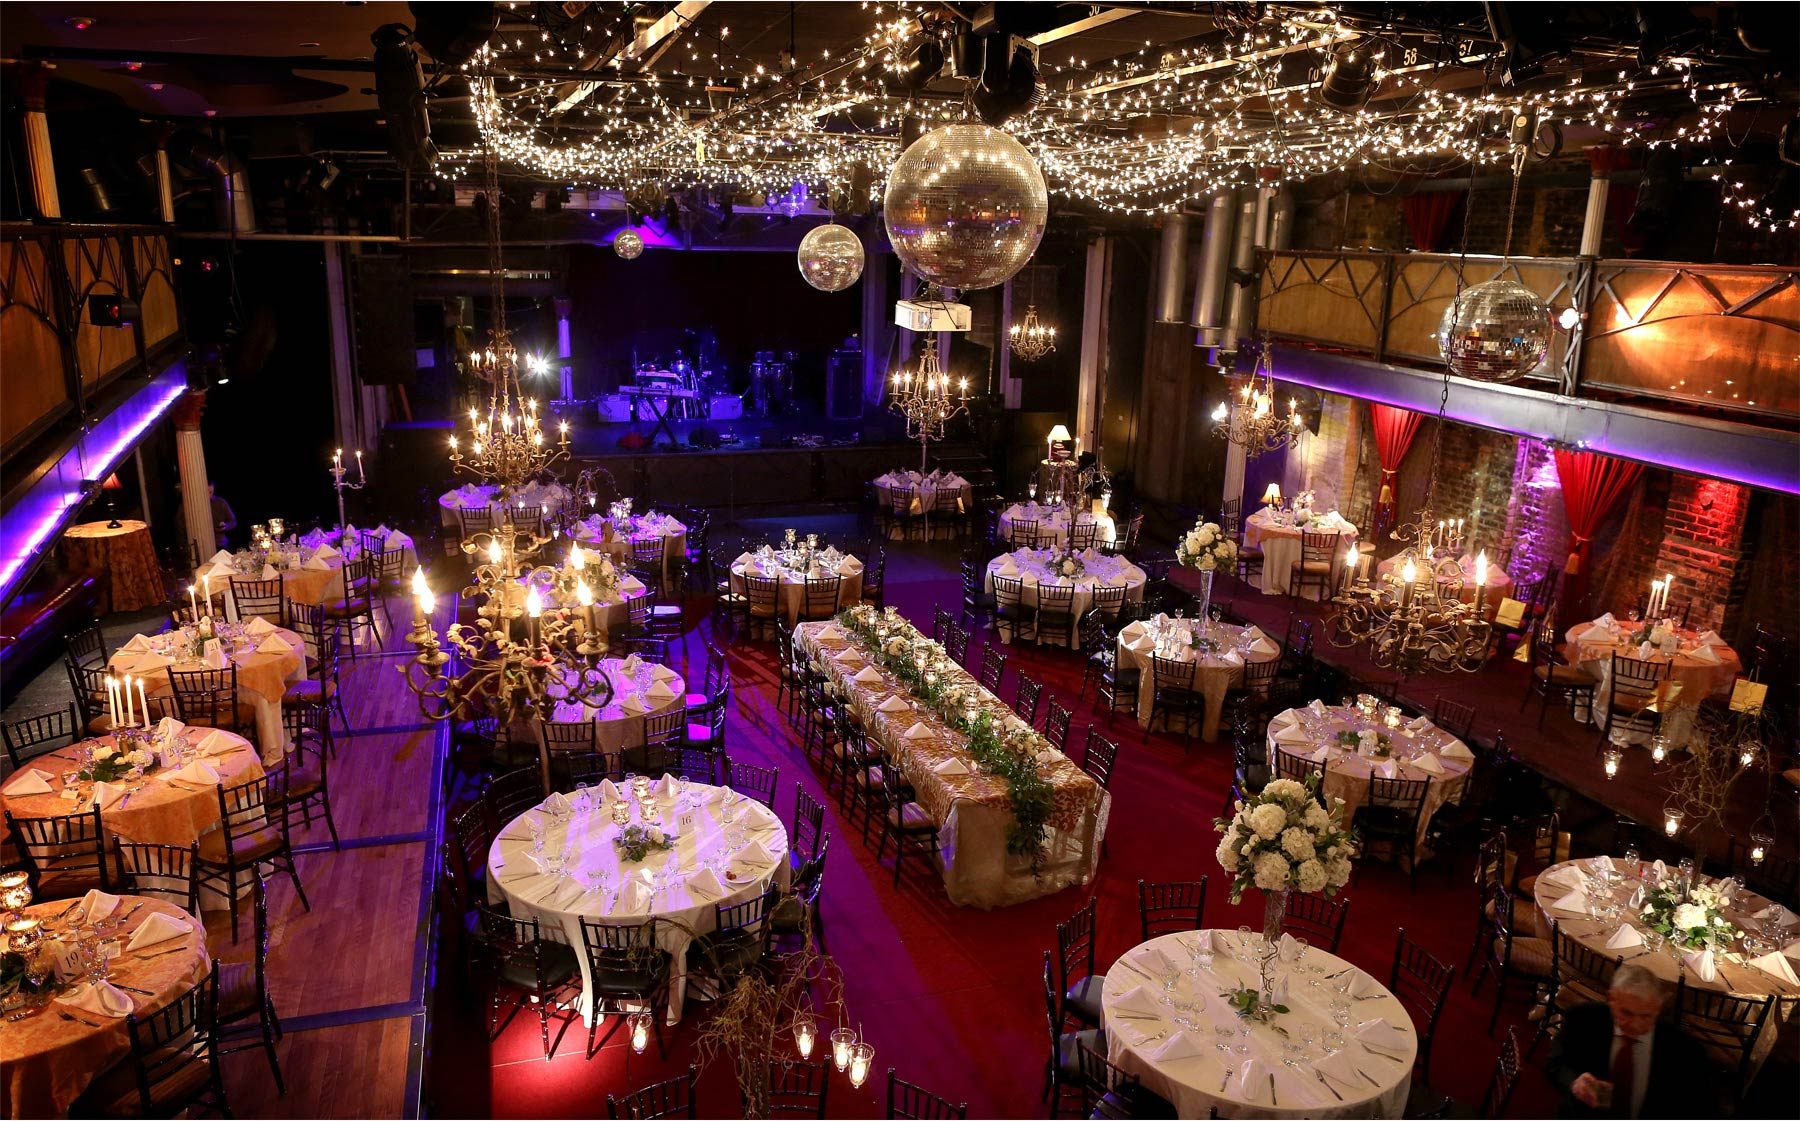 16-Minneapolis-Minnesota-Wedding-Photographer-by-Andrew-Vick-Photography-Winter-Varsity-Theater-Reception-Room-Decorations-Decor-Details-Table-Setting-Sara-and-Rob.jpg